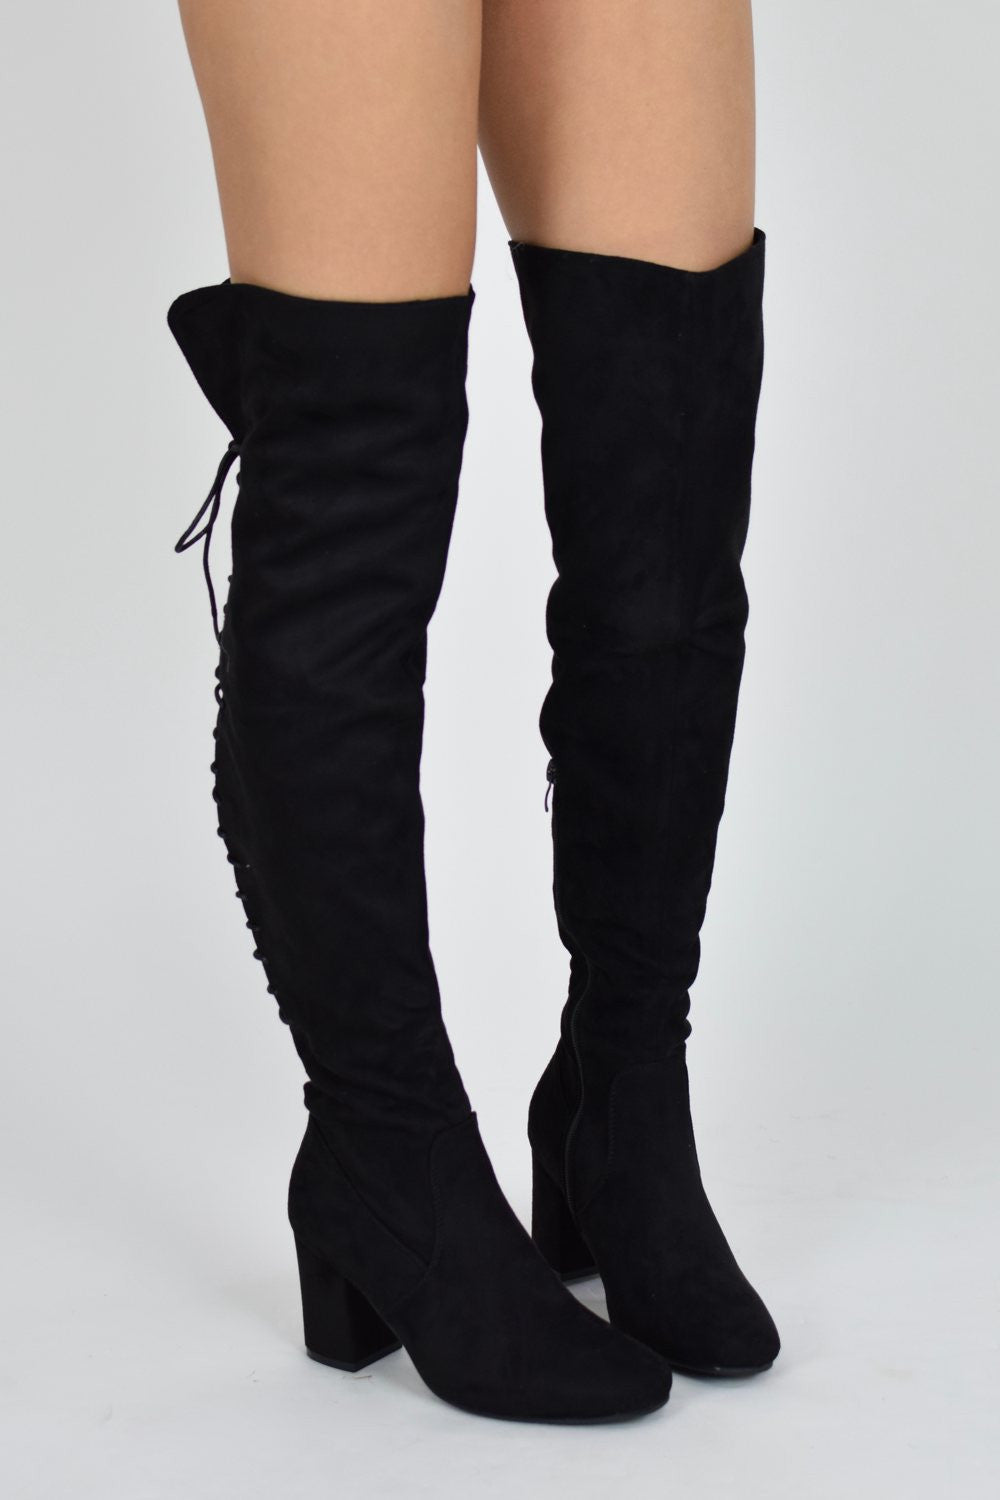 HIGH HOPES Lace Up Block Heel Over knee Boots - Black Suede - AJ Voyage - 2